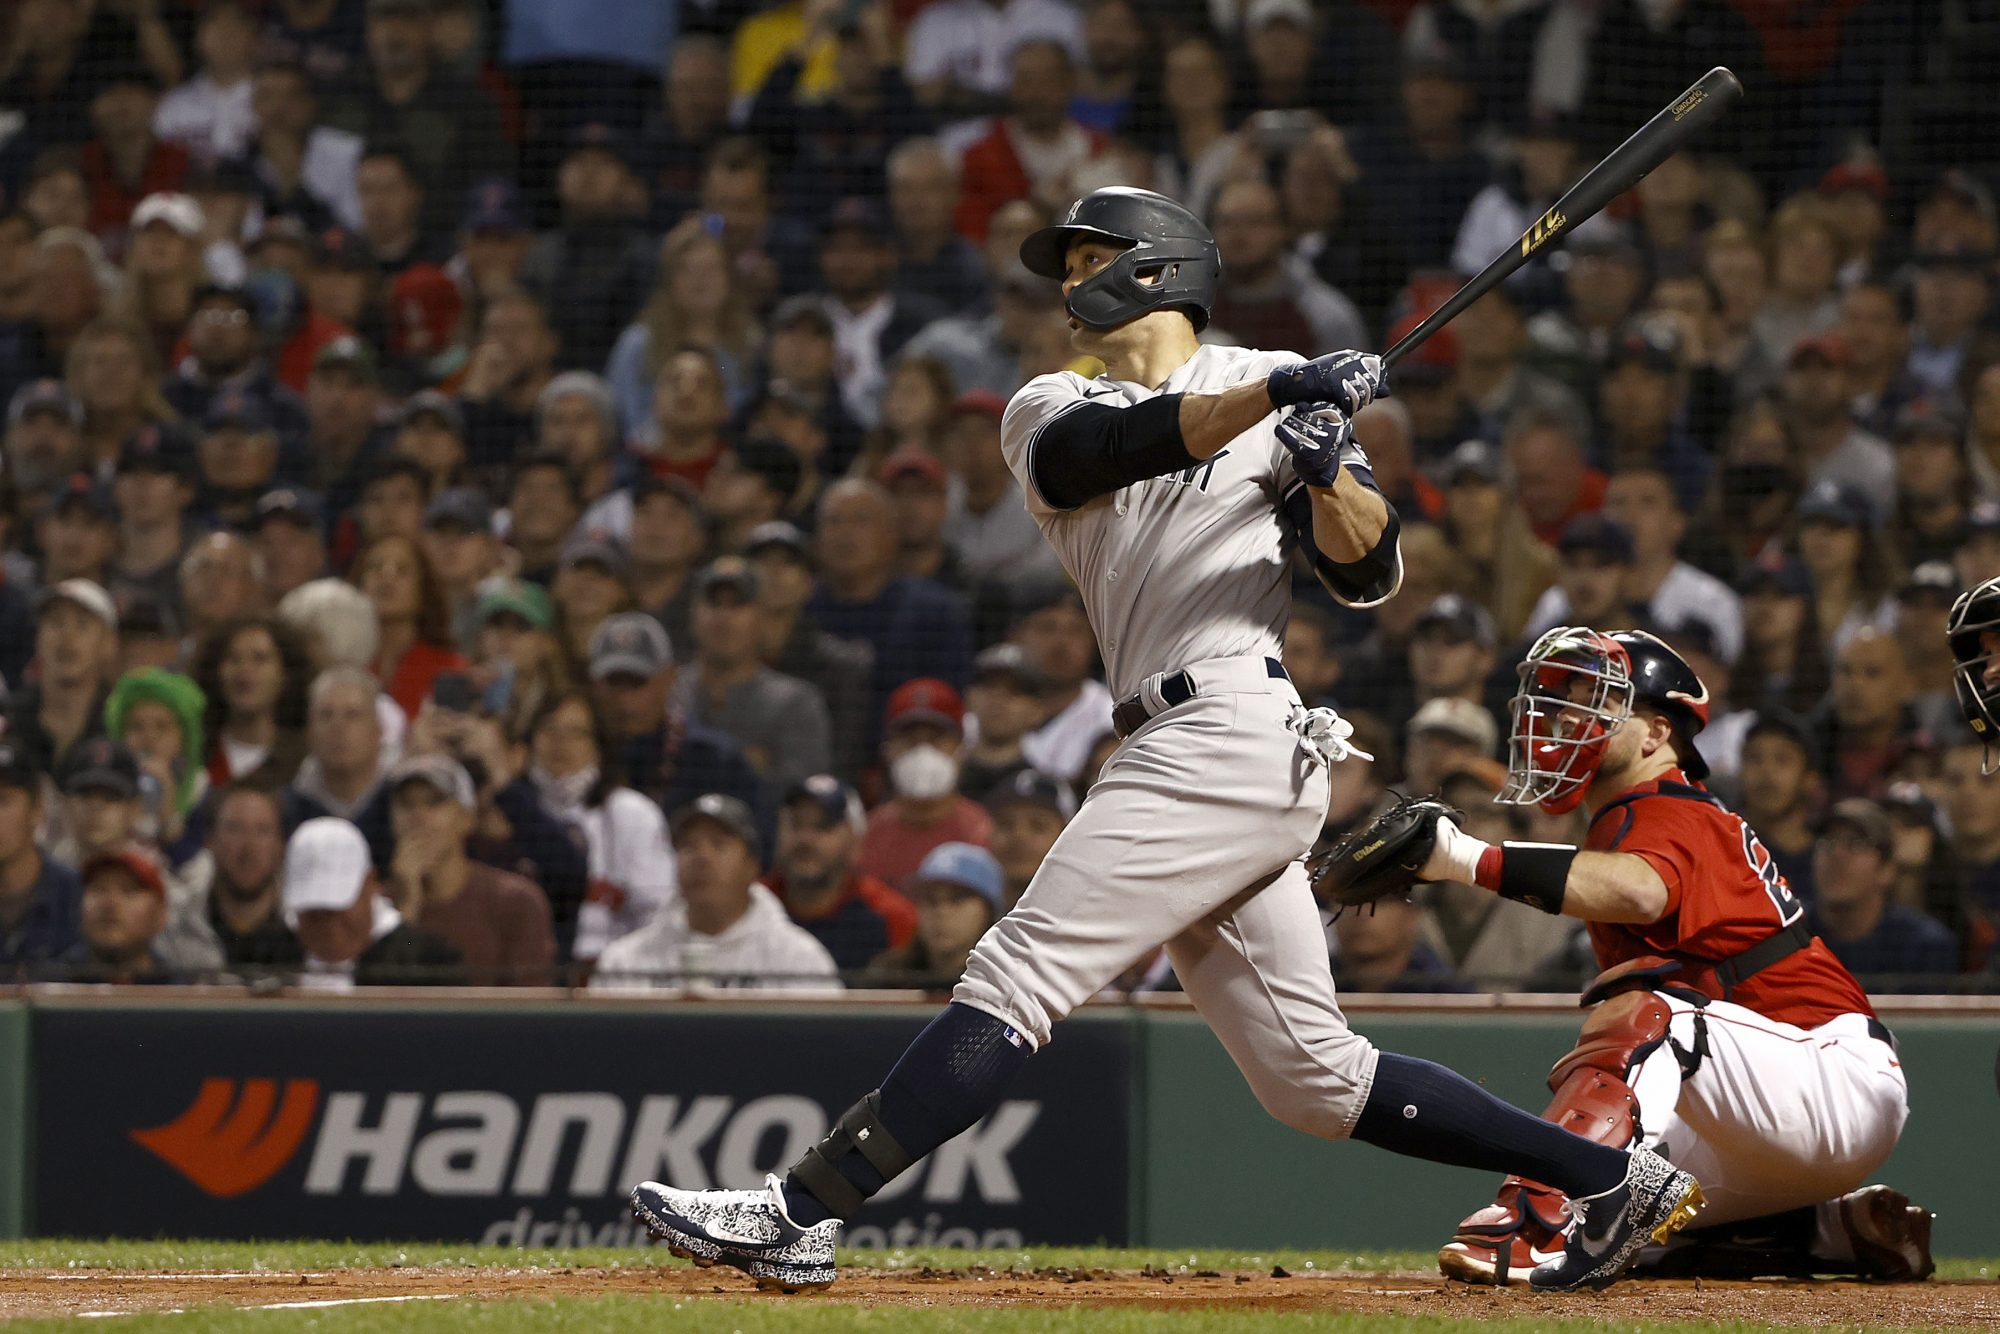 Giancarlo Stanton of the New York Yankees socks a mega dinger off the wall in left, for a single.